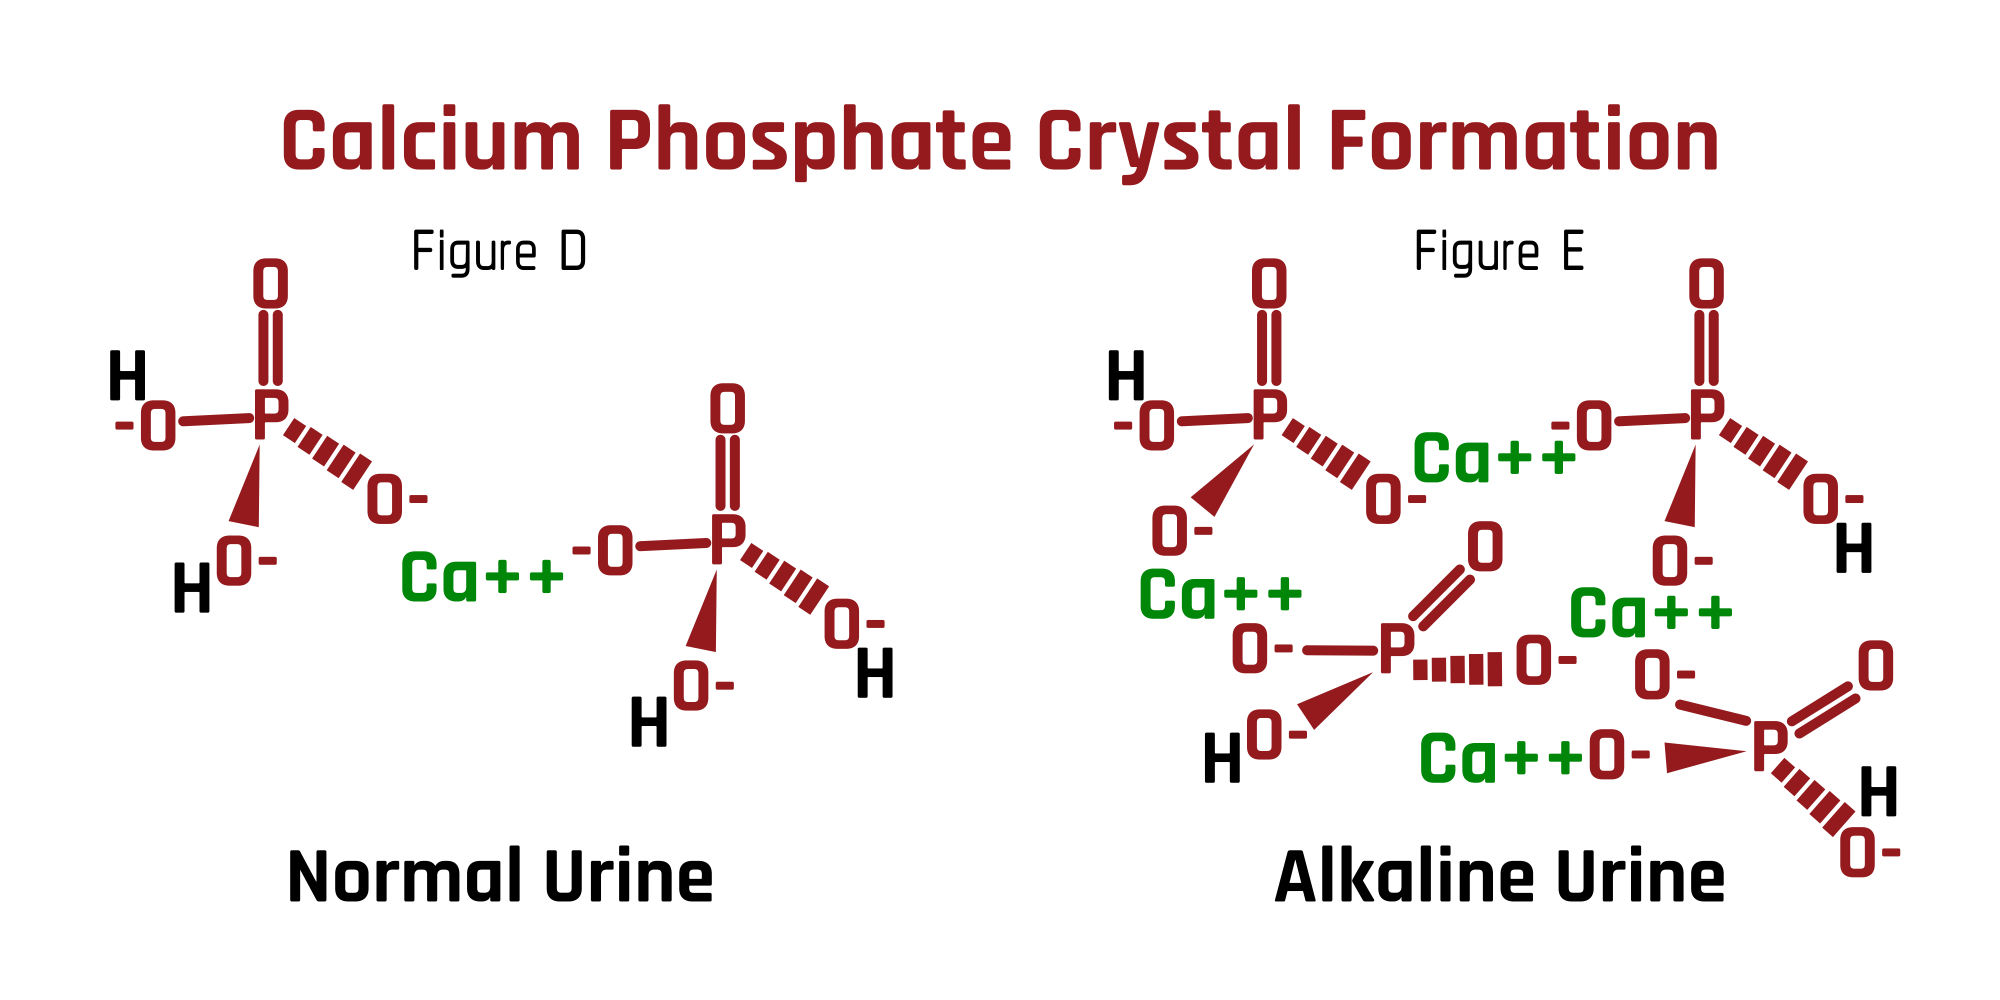 Calcium Phosphate Crystal Formation